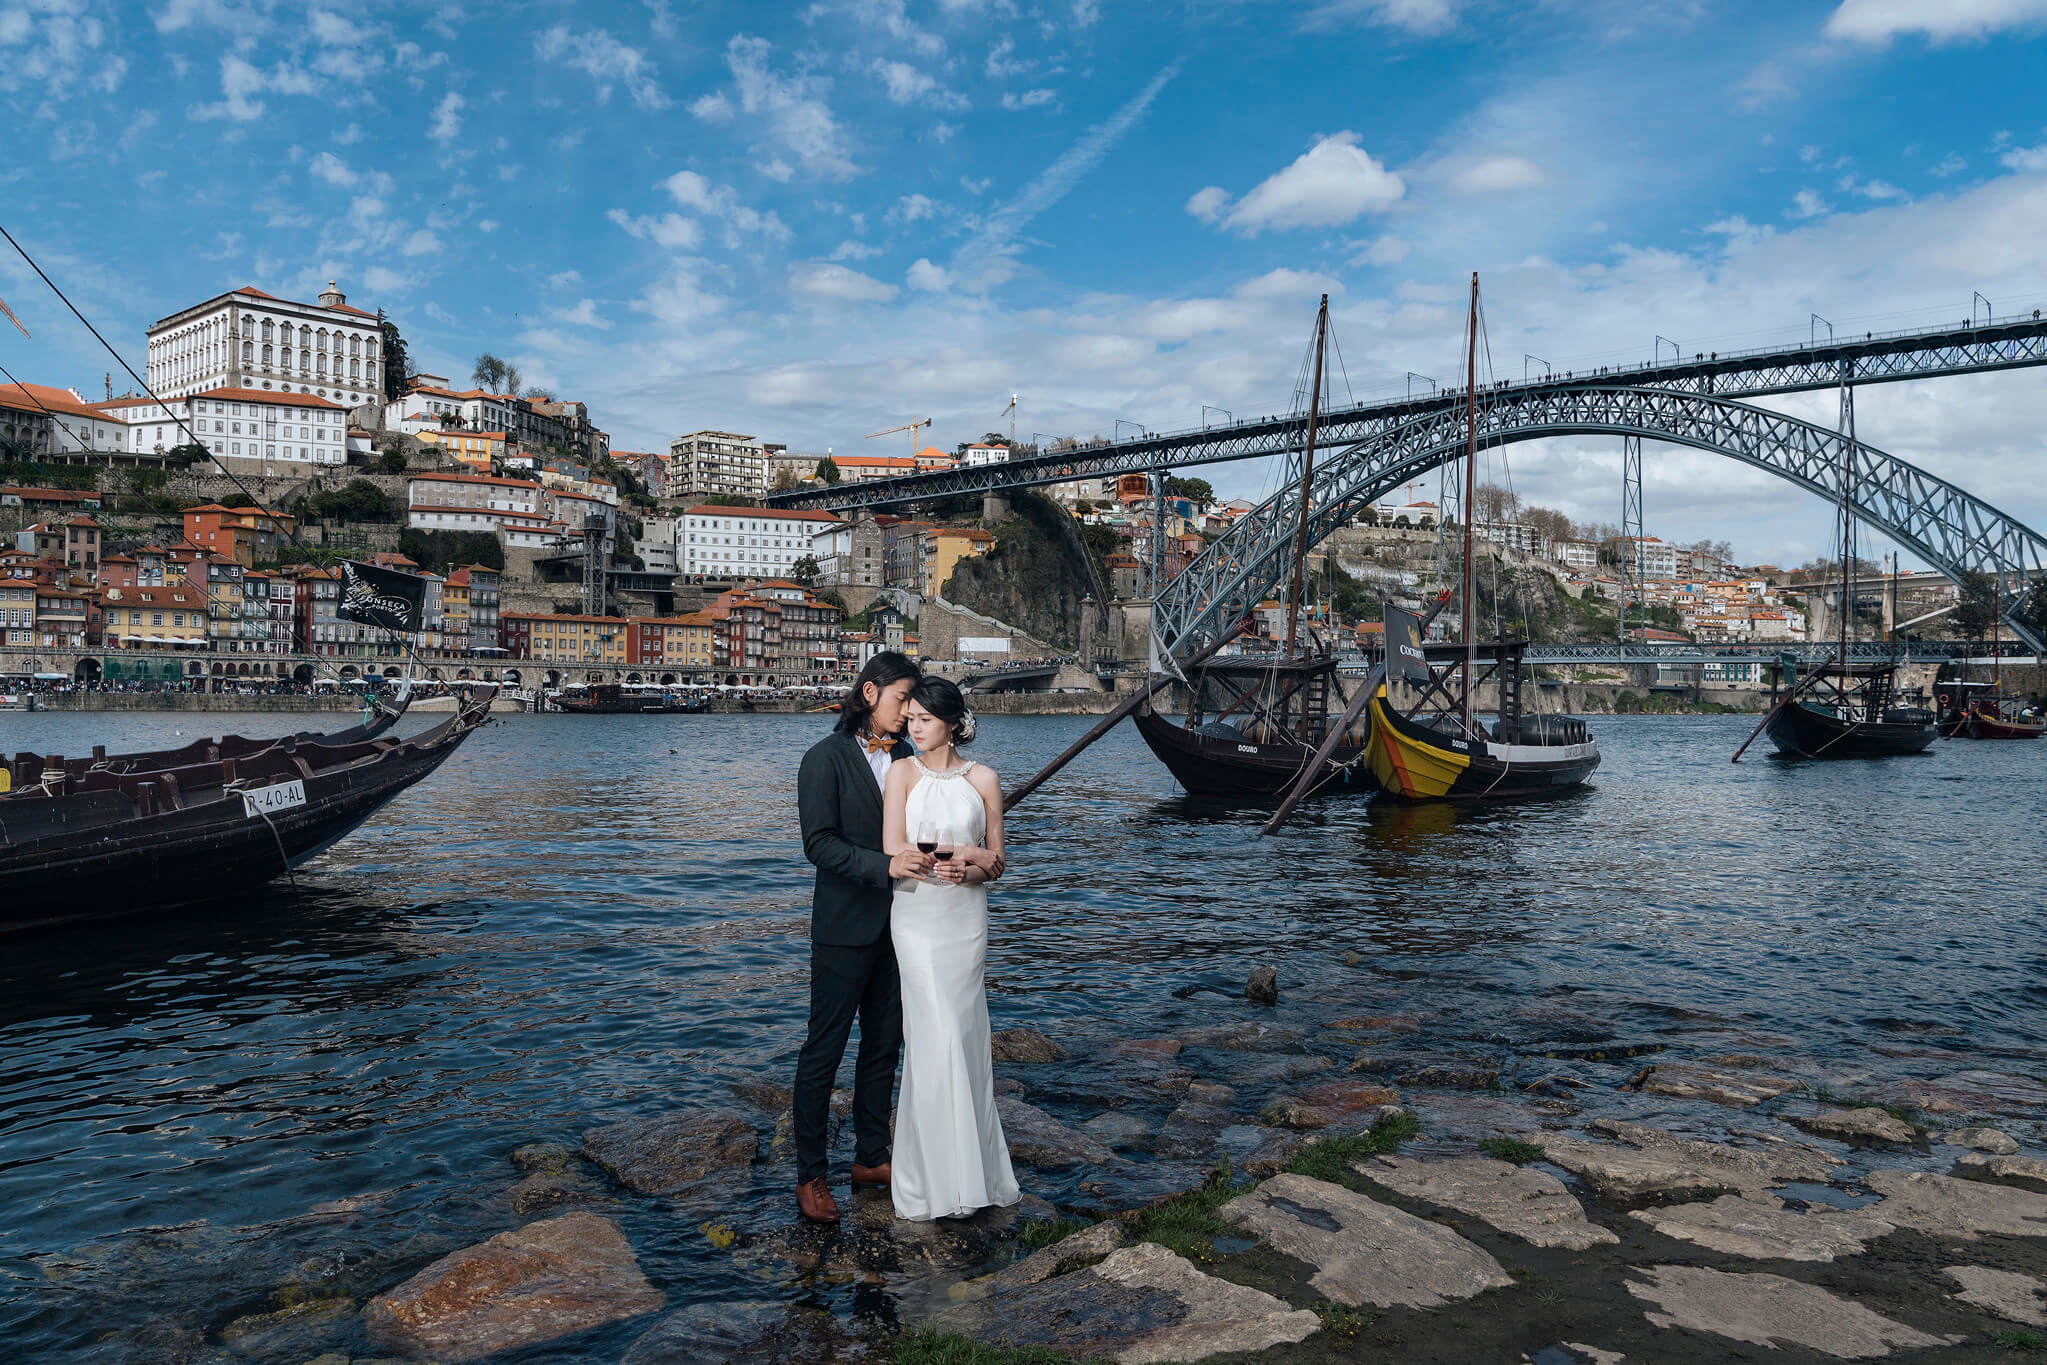 波多婚紗, 海外婚紗, 自助婚紗, 葡萄牙婚紗, Porto, Donfer, EASTERN WEDDING